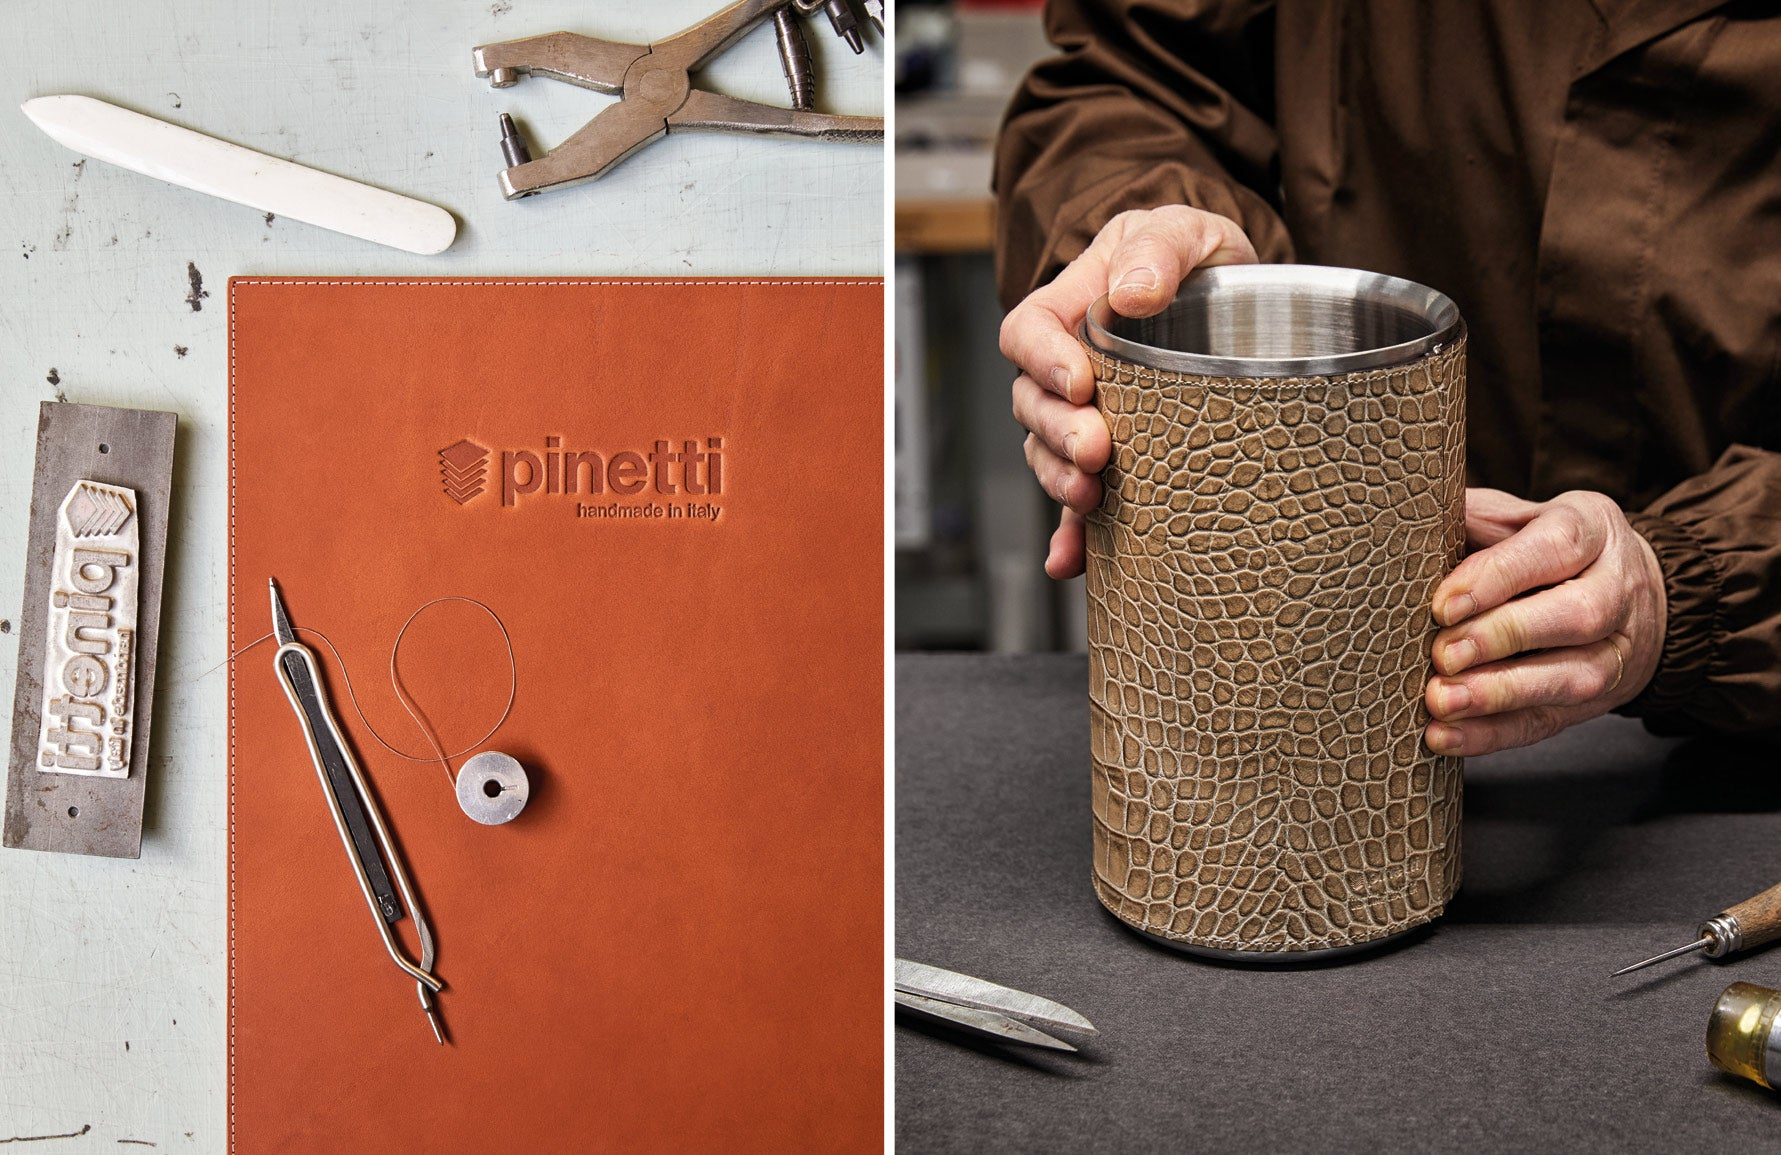 Pinetti Leather Goods | Made In Italy | Read more in The Luxurist | LuxDeco.com